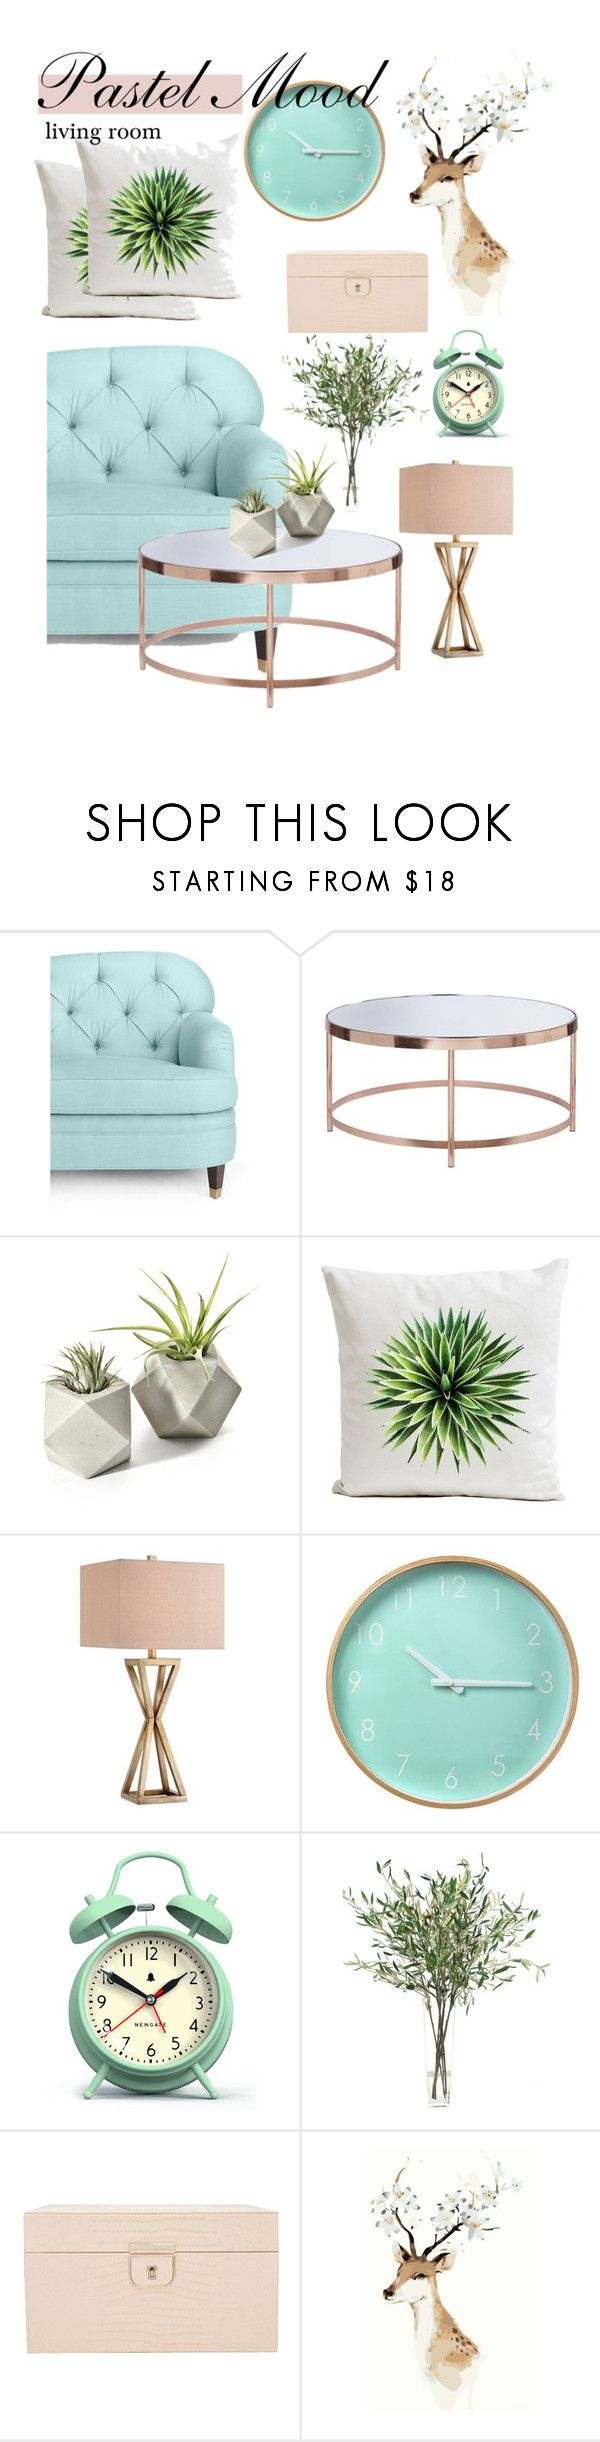 """Livingroom Inspo #1"" by meetyesintacin on Polyvore"